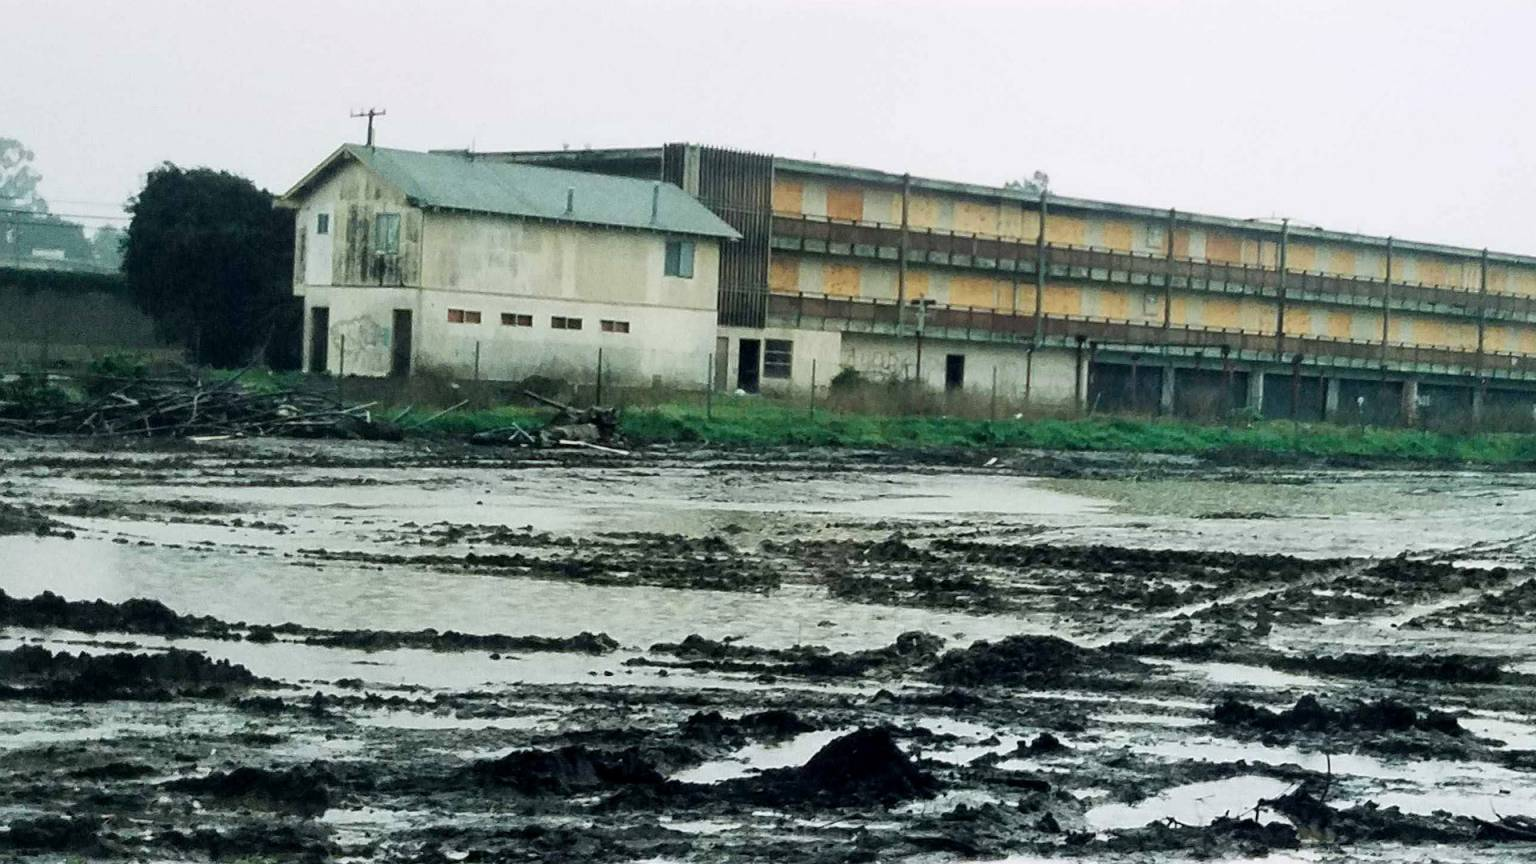 industry buildings and sheds flooded by murky muddy water